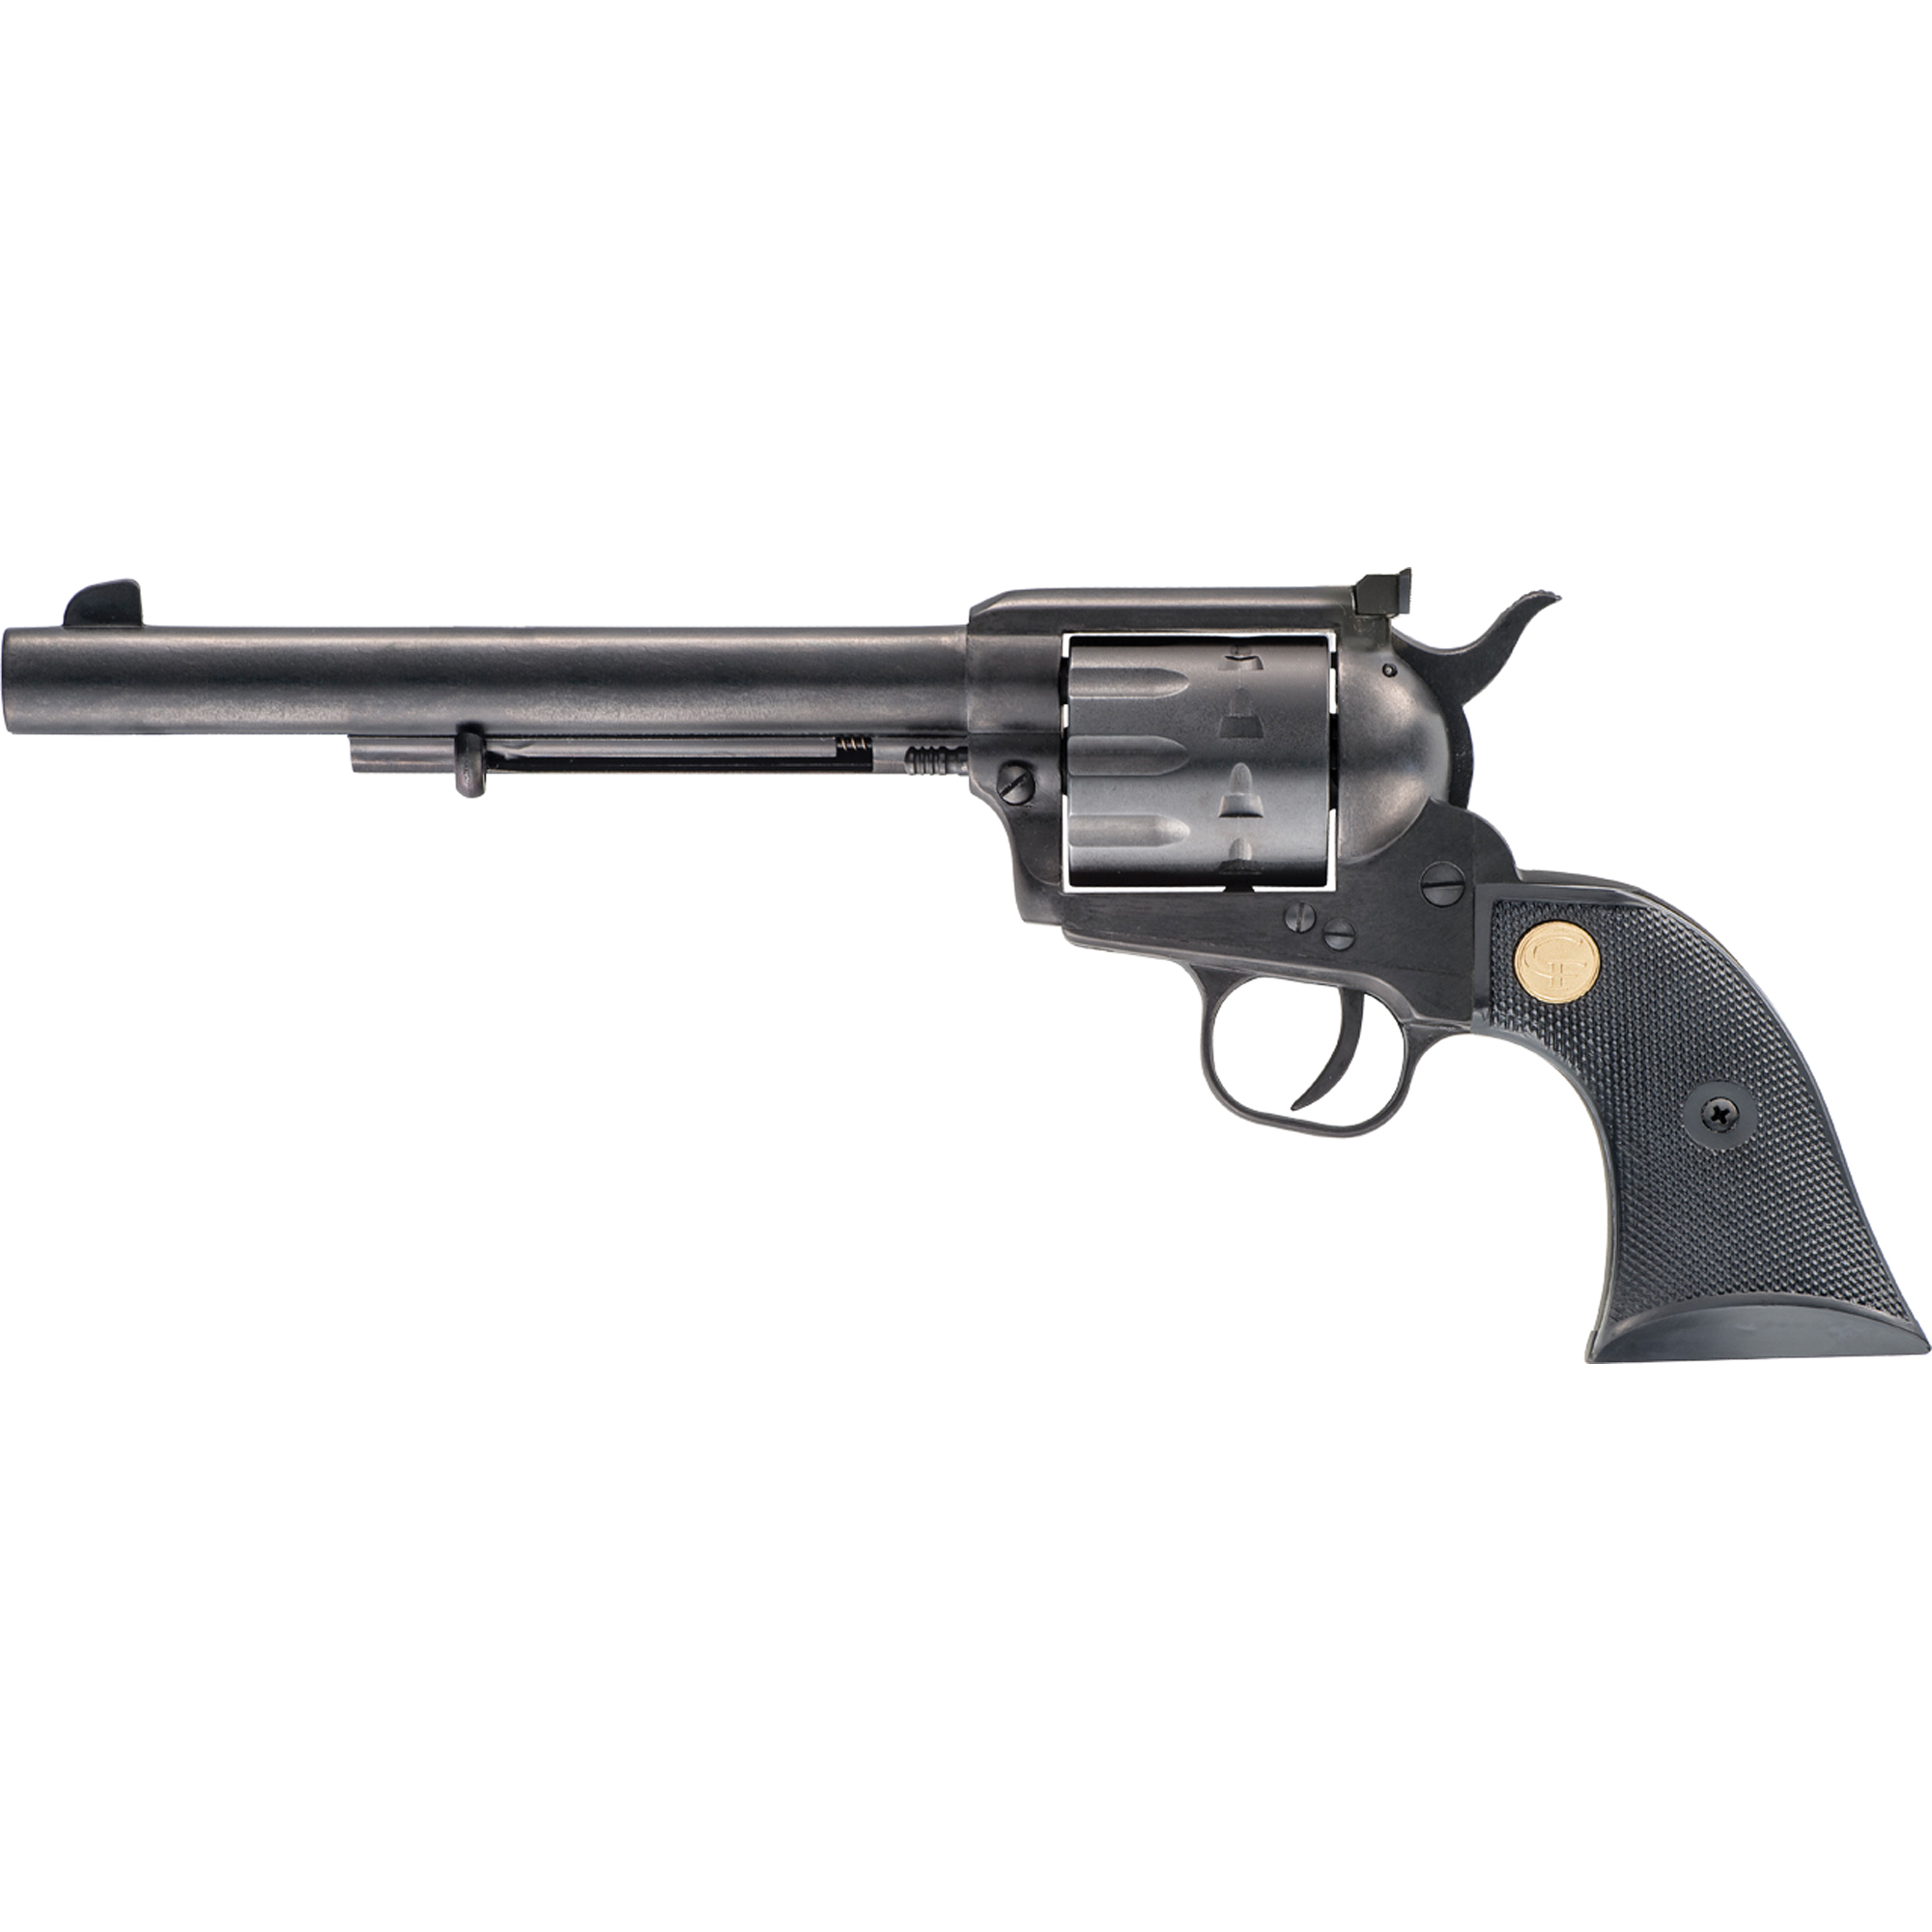 "The single action 1873 is a timeless handgun and a symbol of the American West. The Chiappa SAA 1873 series captures the spirit and allure of these fine revolvers. Chambered in easy to shoot"" readily accessible rimfire cartridges the SAA 1873 is an excellent single action revolver."